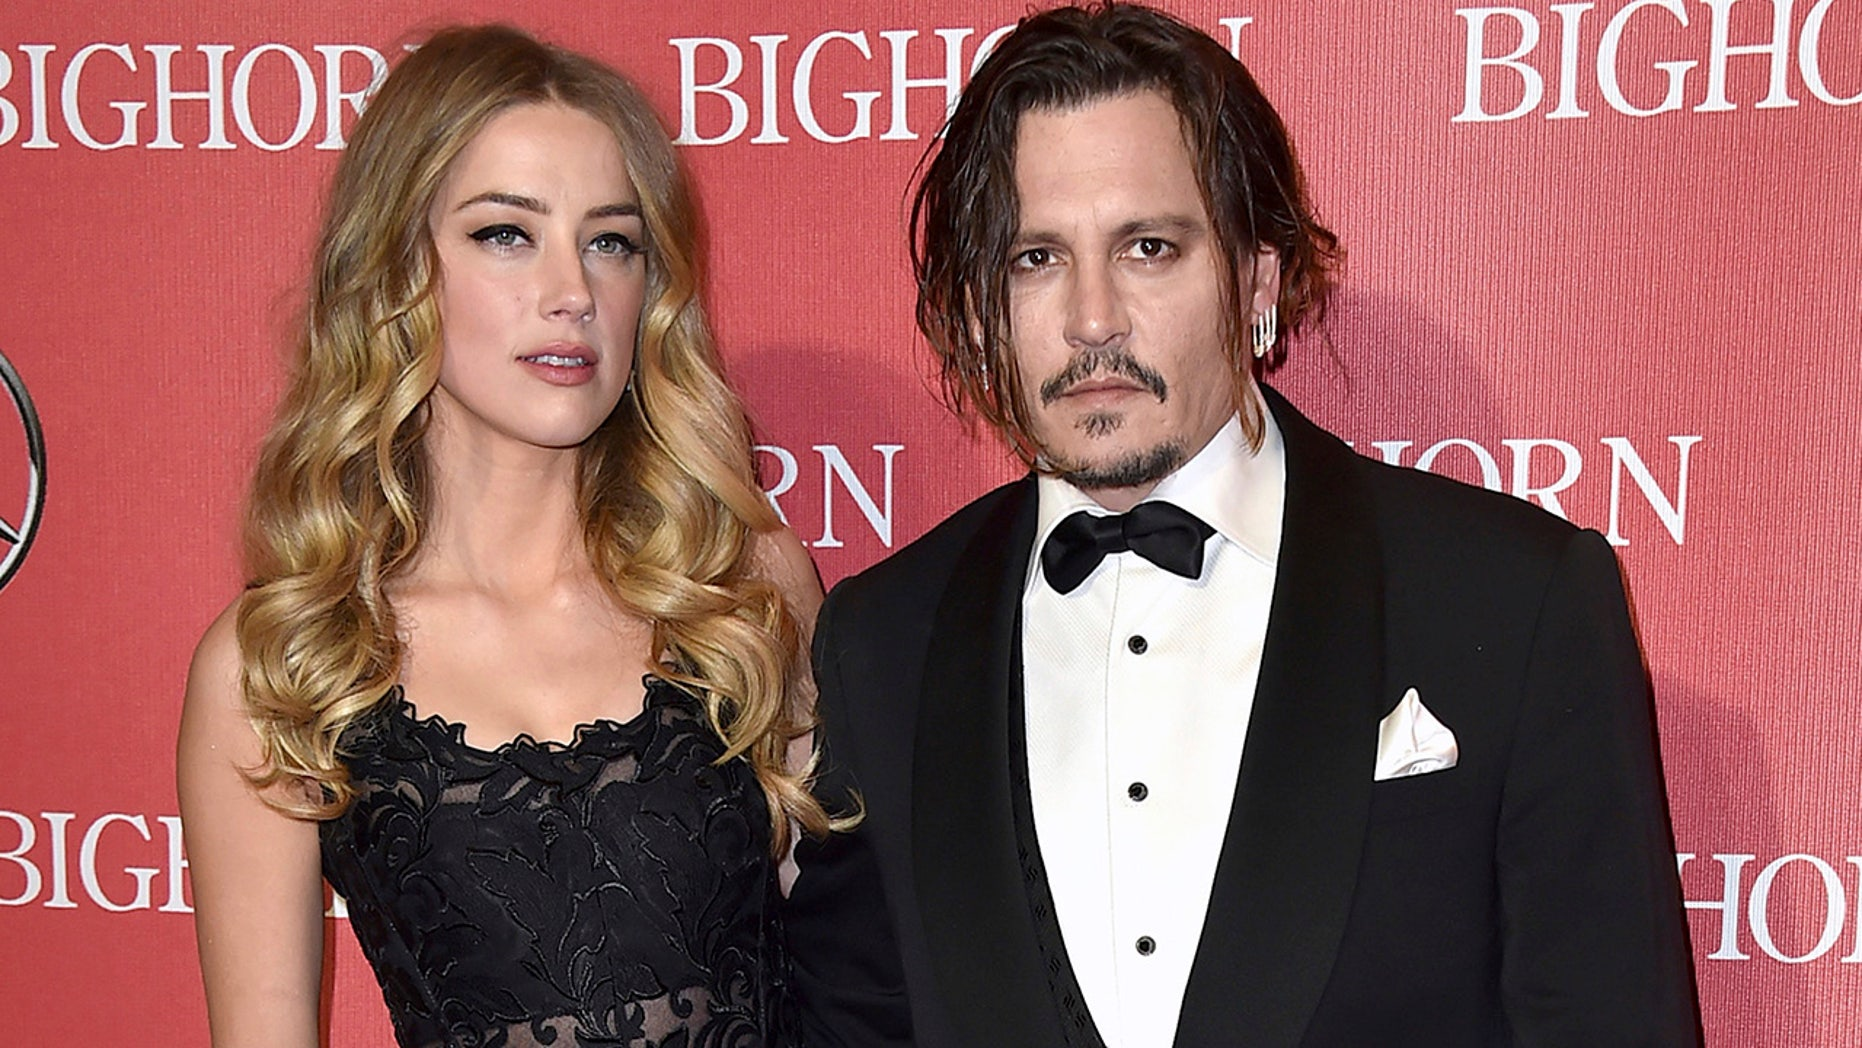 Amber Heard, and Johnny Depp arrive at the 27th annual Palm Springs International Film Festival Awards Gala in Palm Springs, Calif., Jan. 2, 2016. (Associated Press)